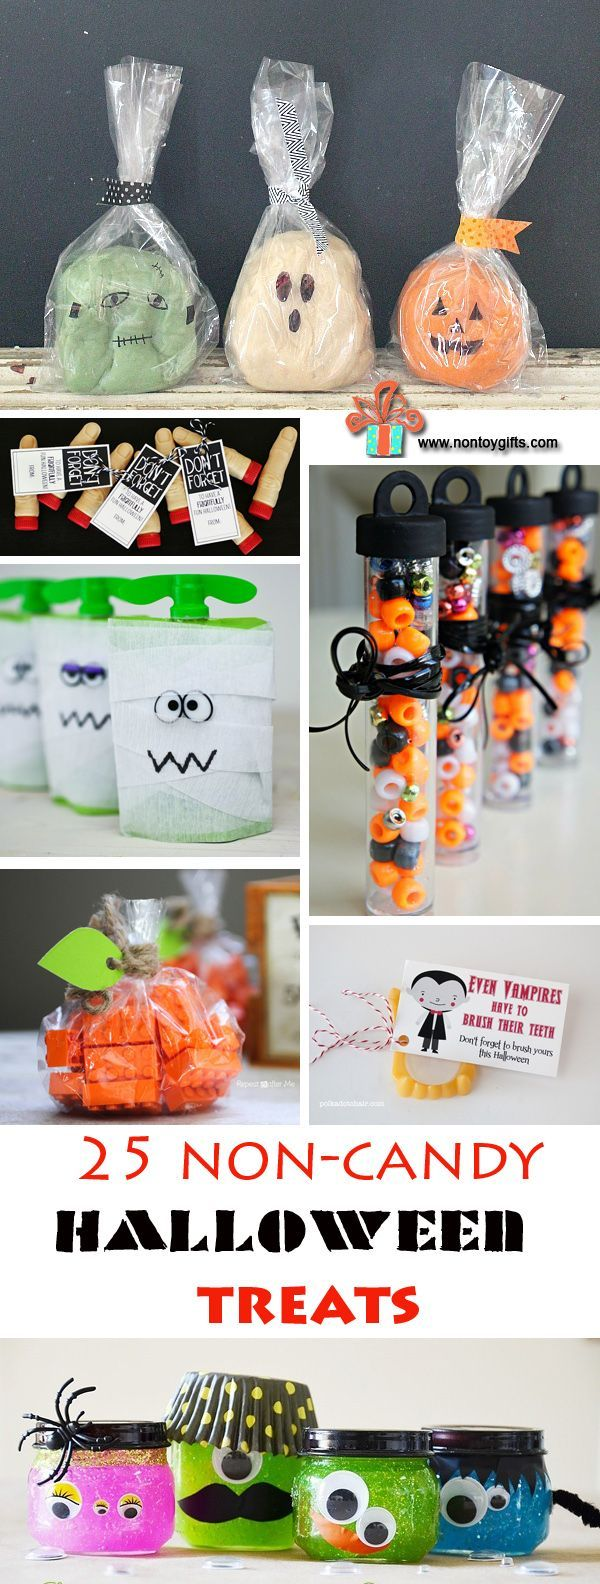 25 Non-Candy Halloween Treats to make - at Non Toy Gifts #noncandy #Halloween #kids